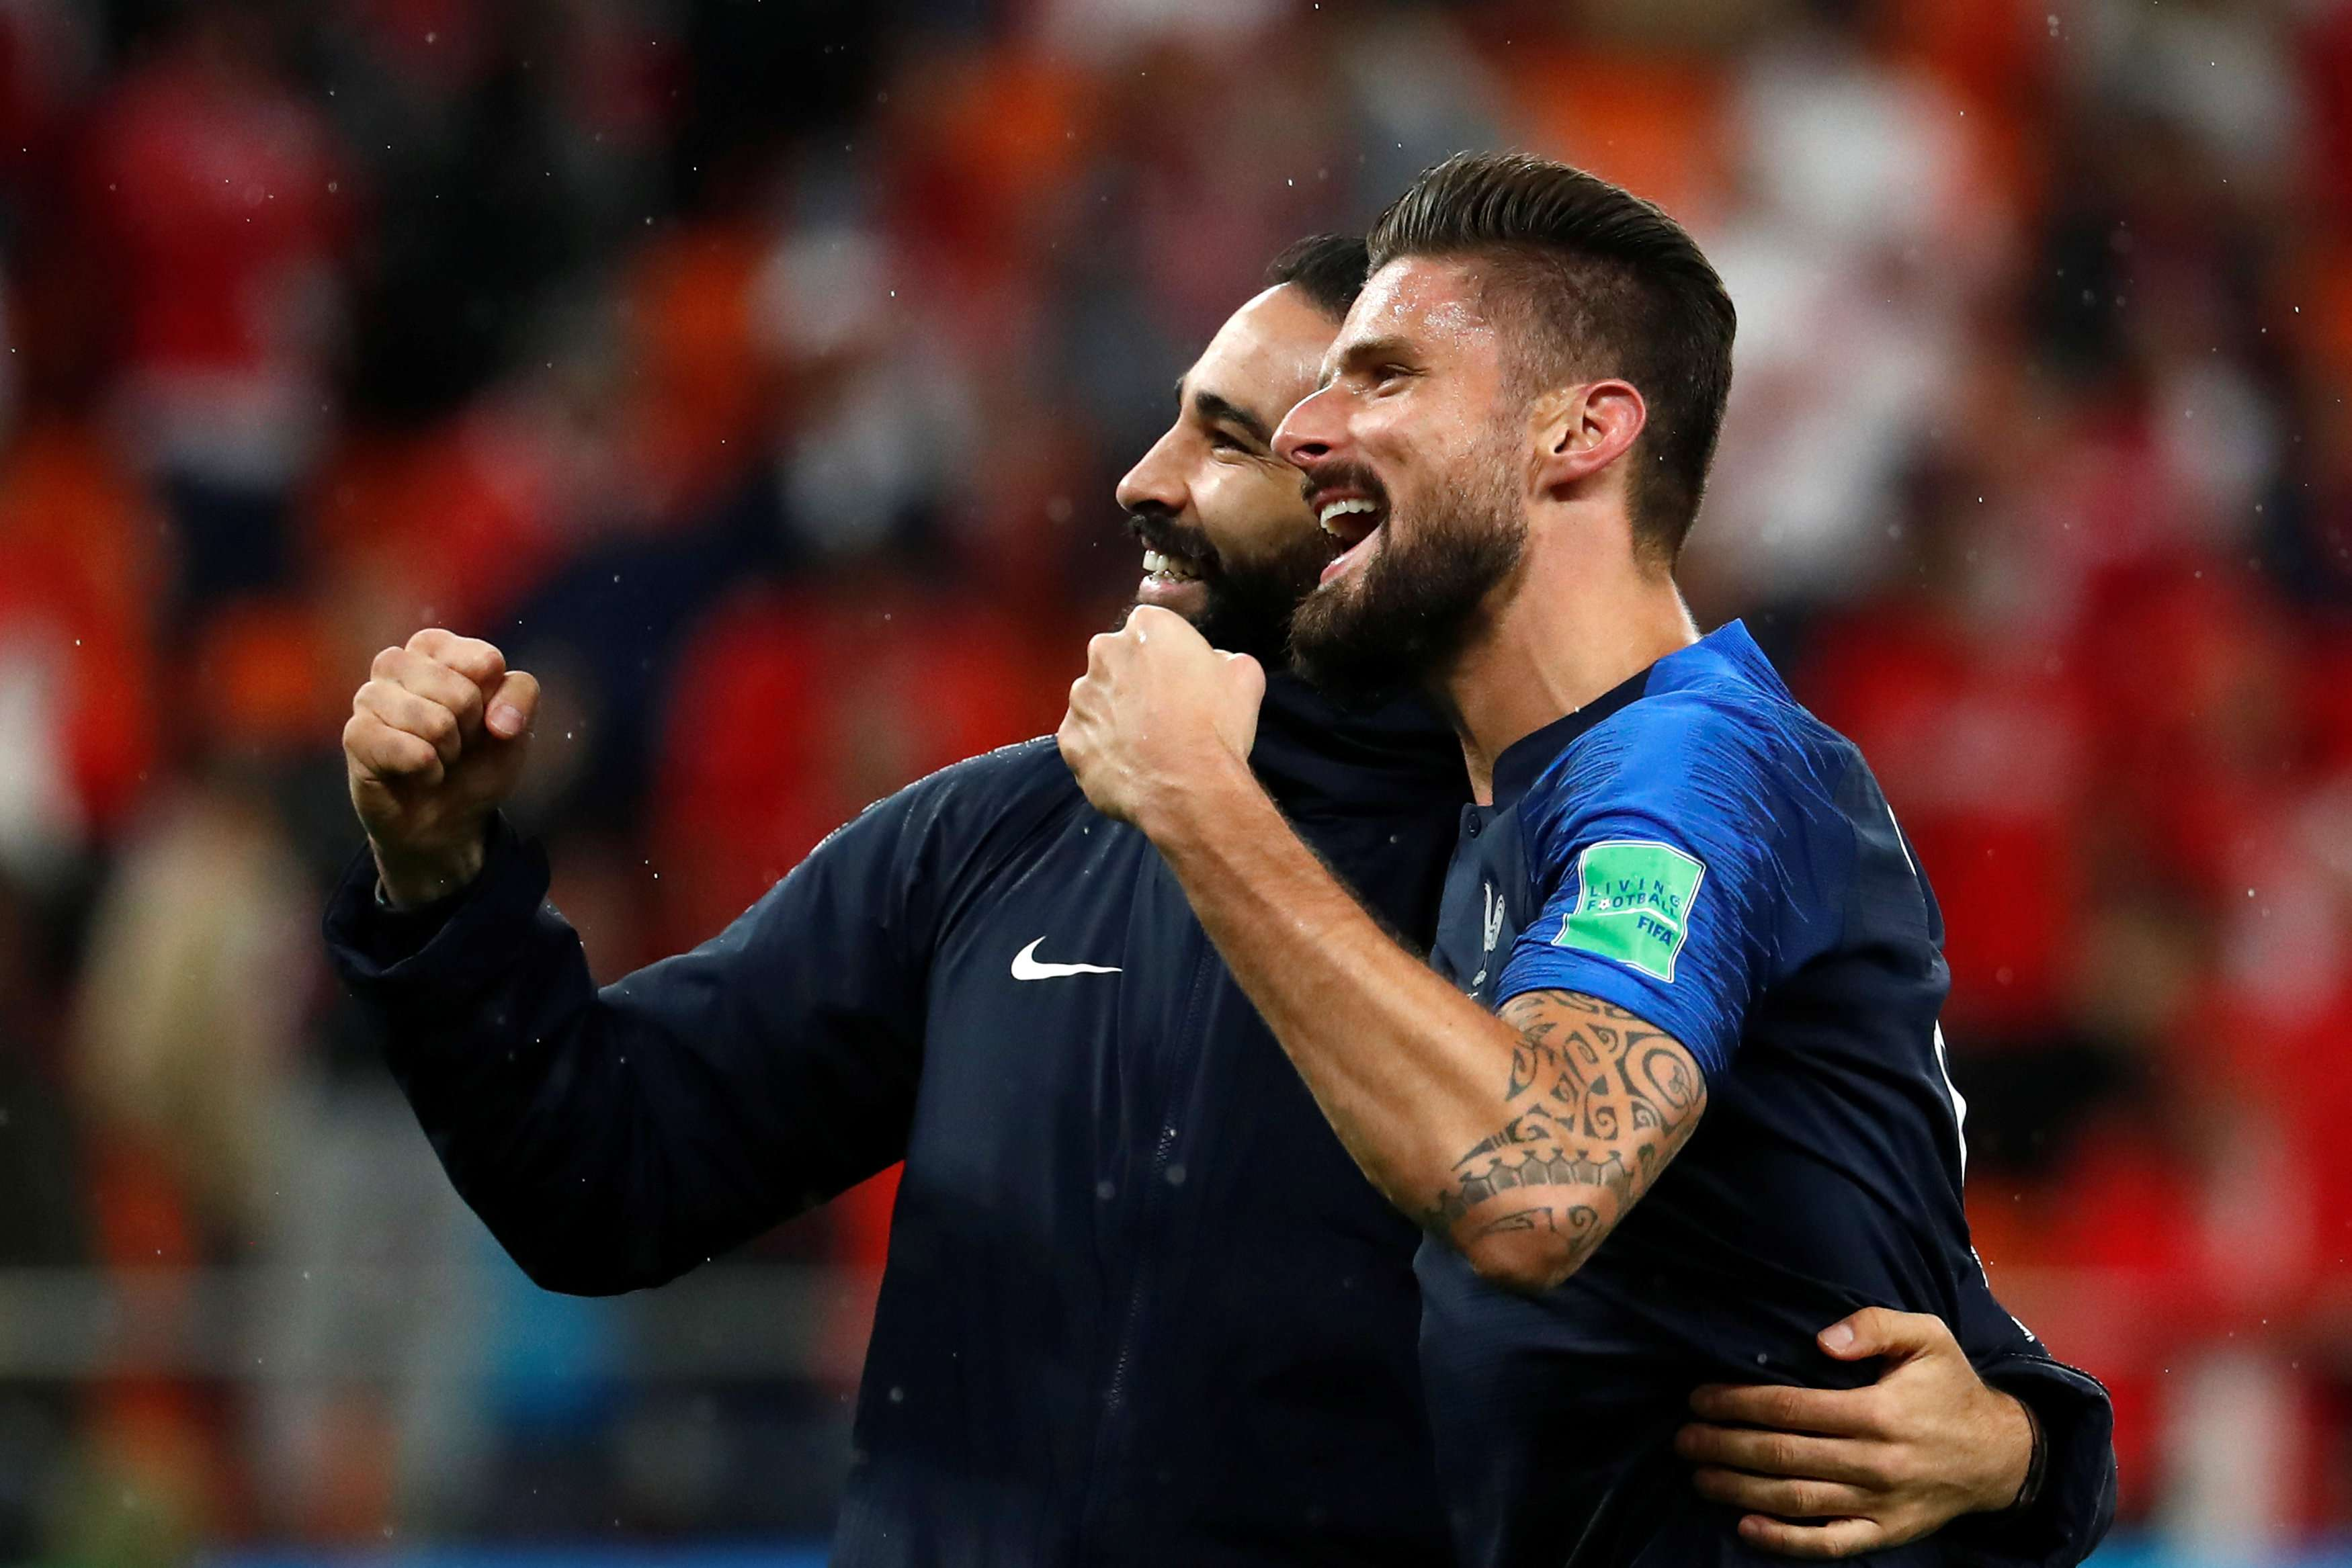 Adil Rami (L) and Olivier Giroud celebrate victory after France's game against Peru, on June 21. (Reuters)